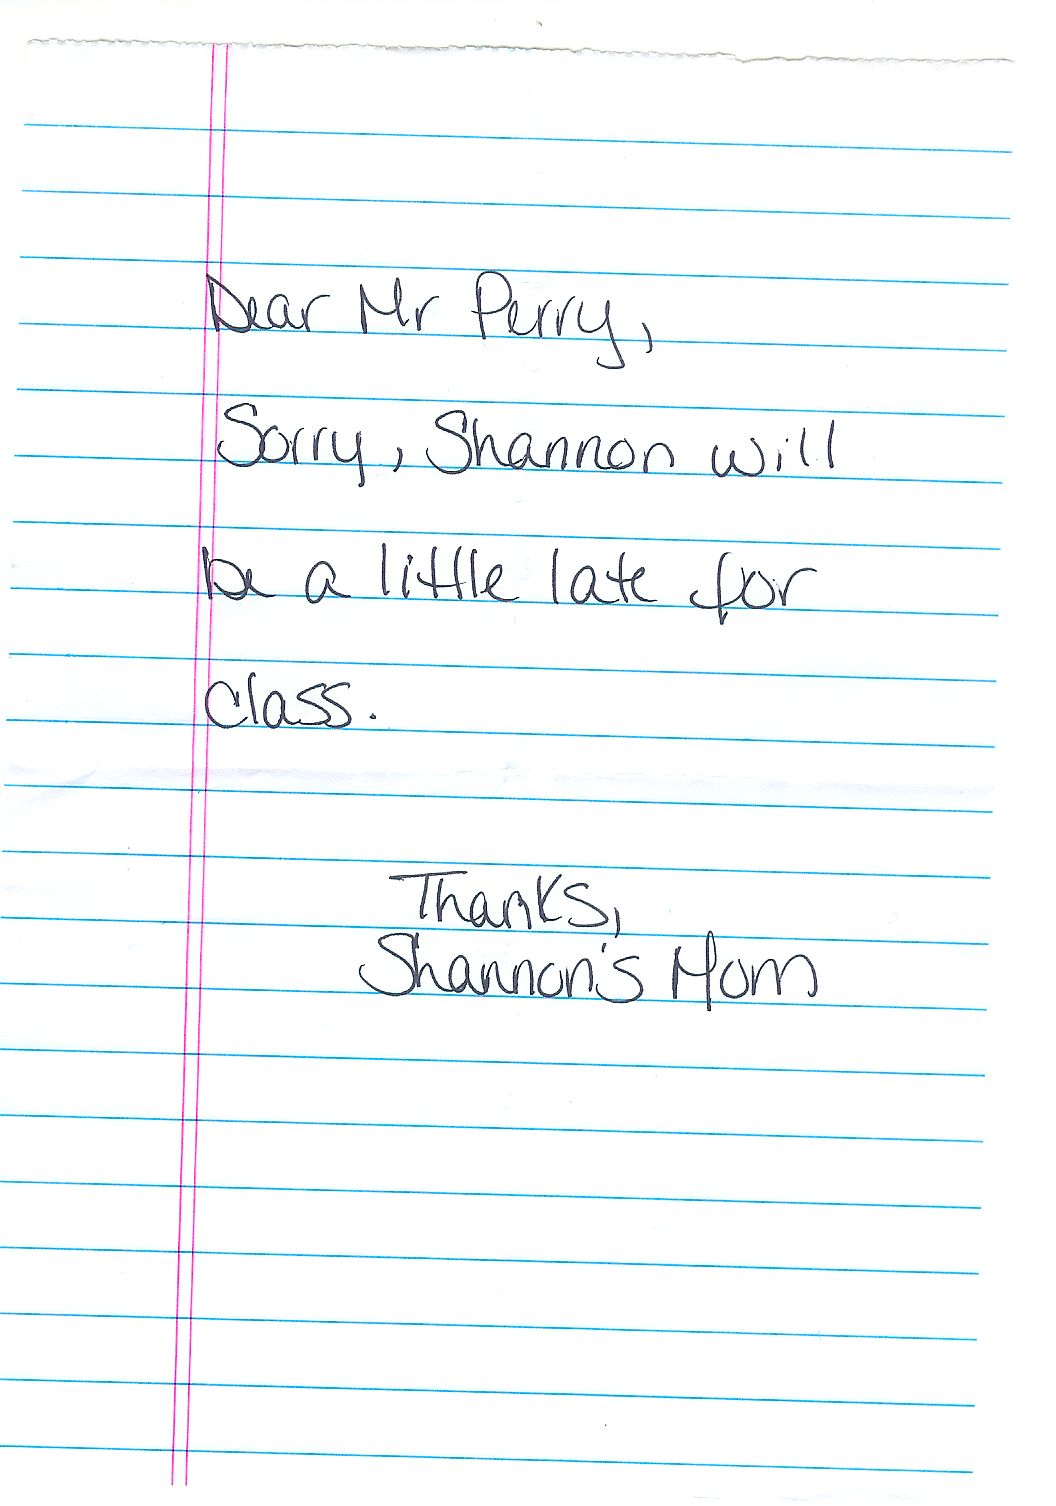 Shannon's excuse